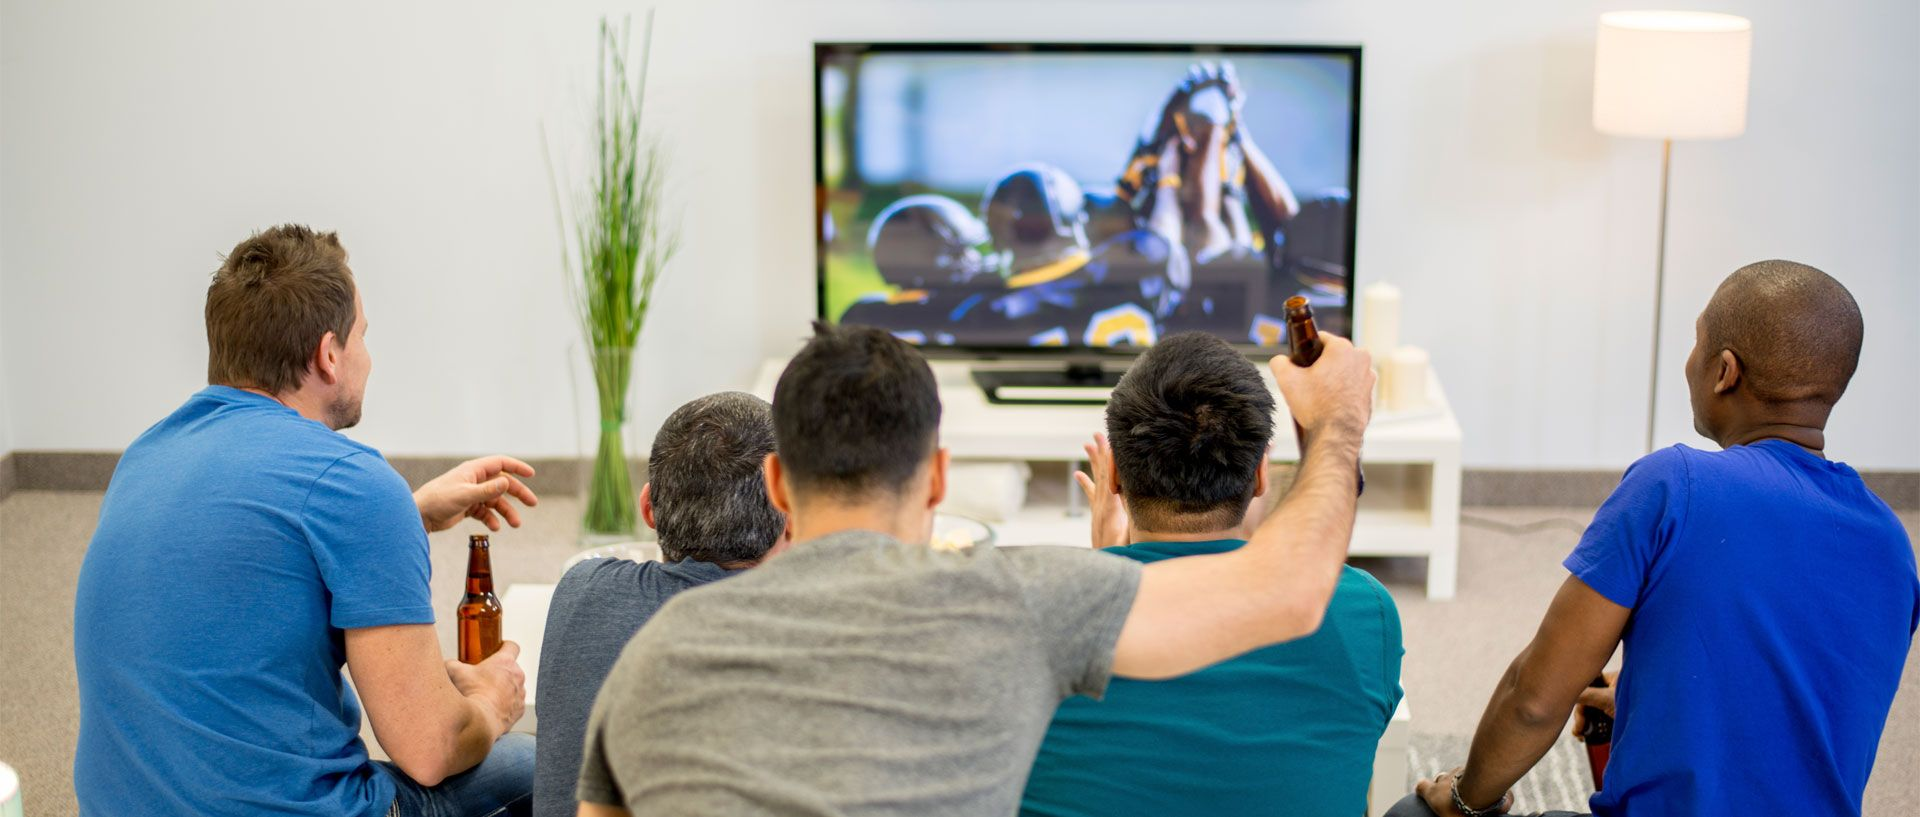 How to turn off smart tv snooping features smart tv